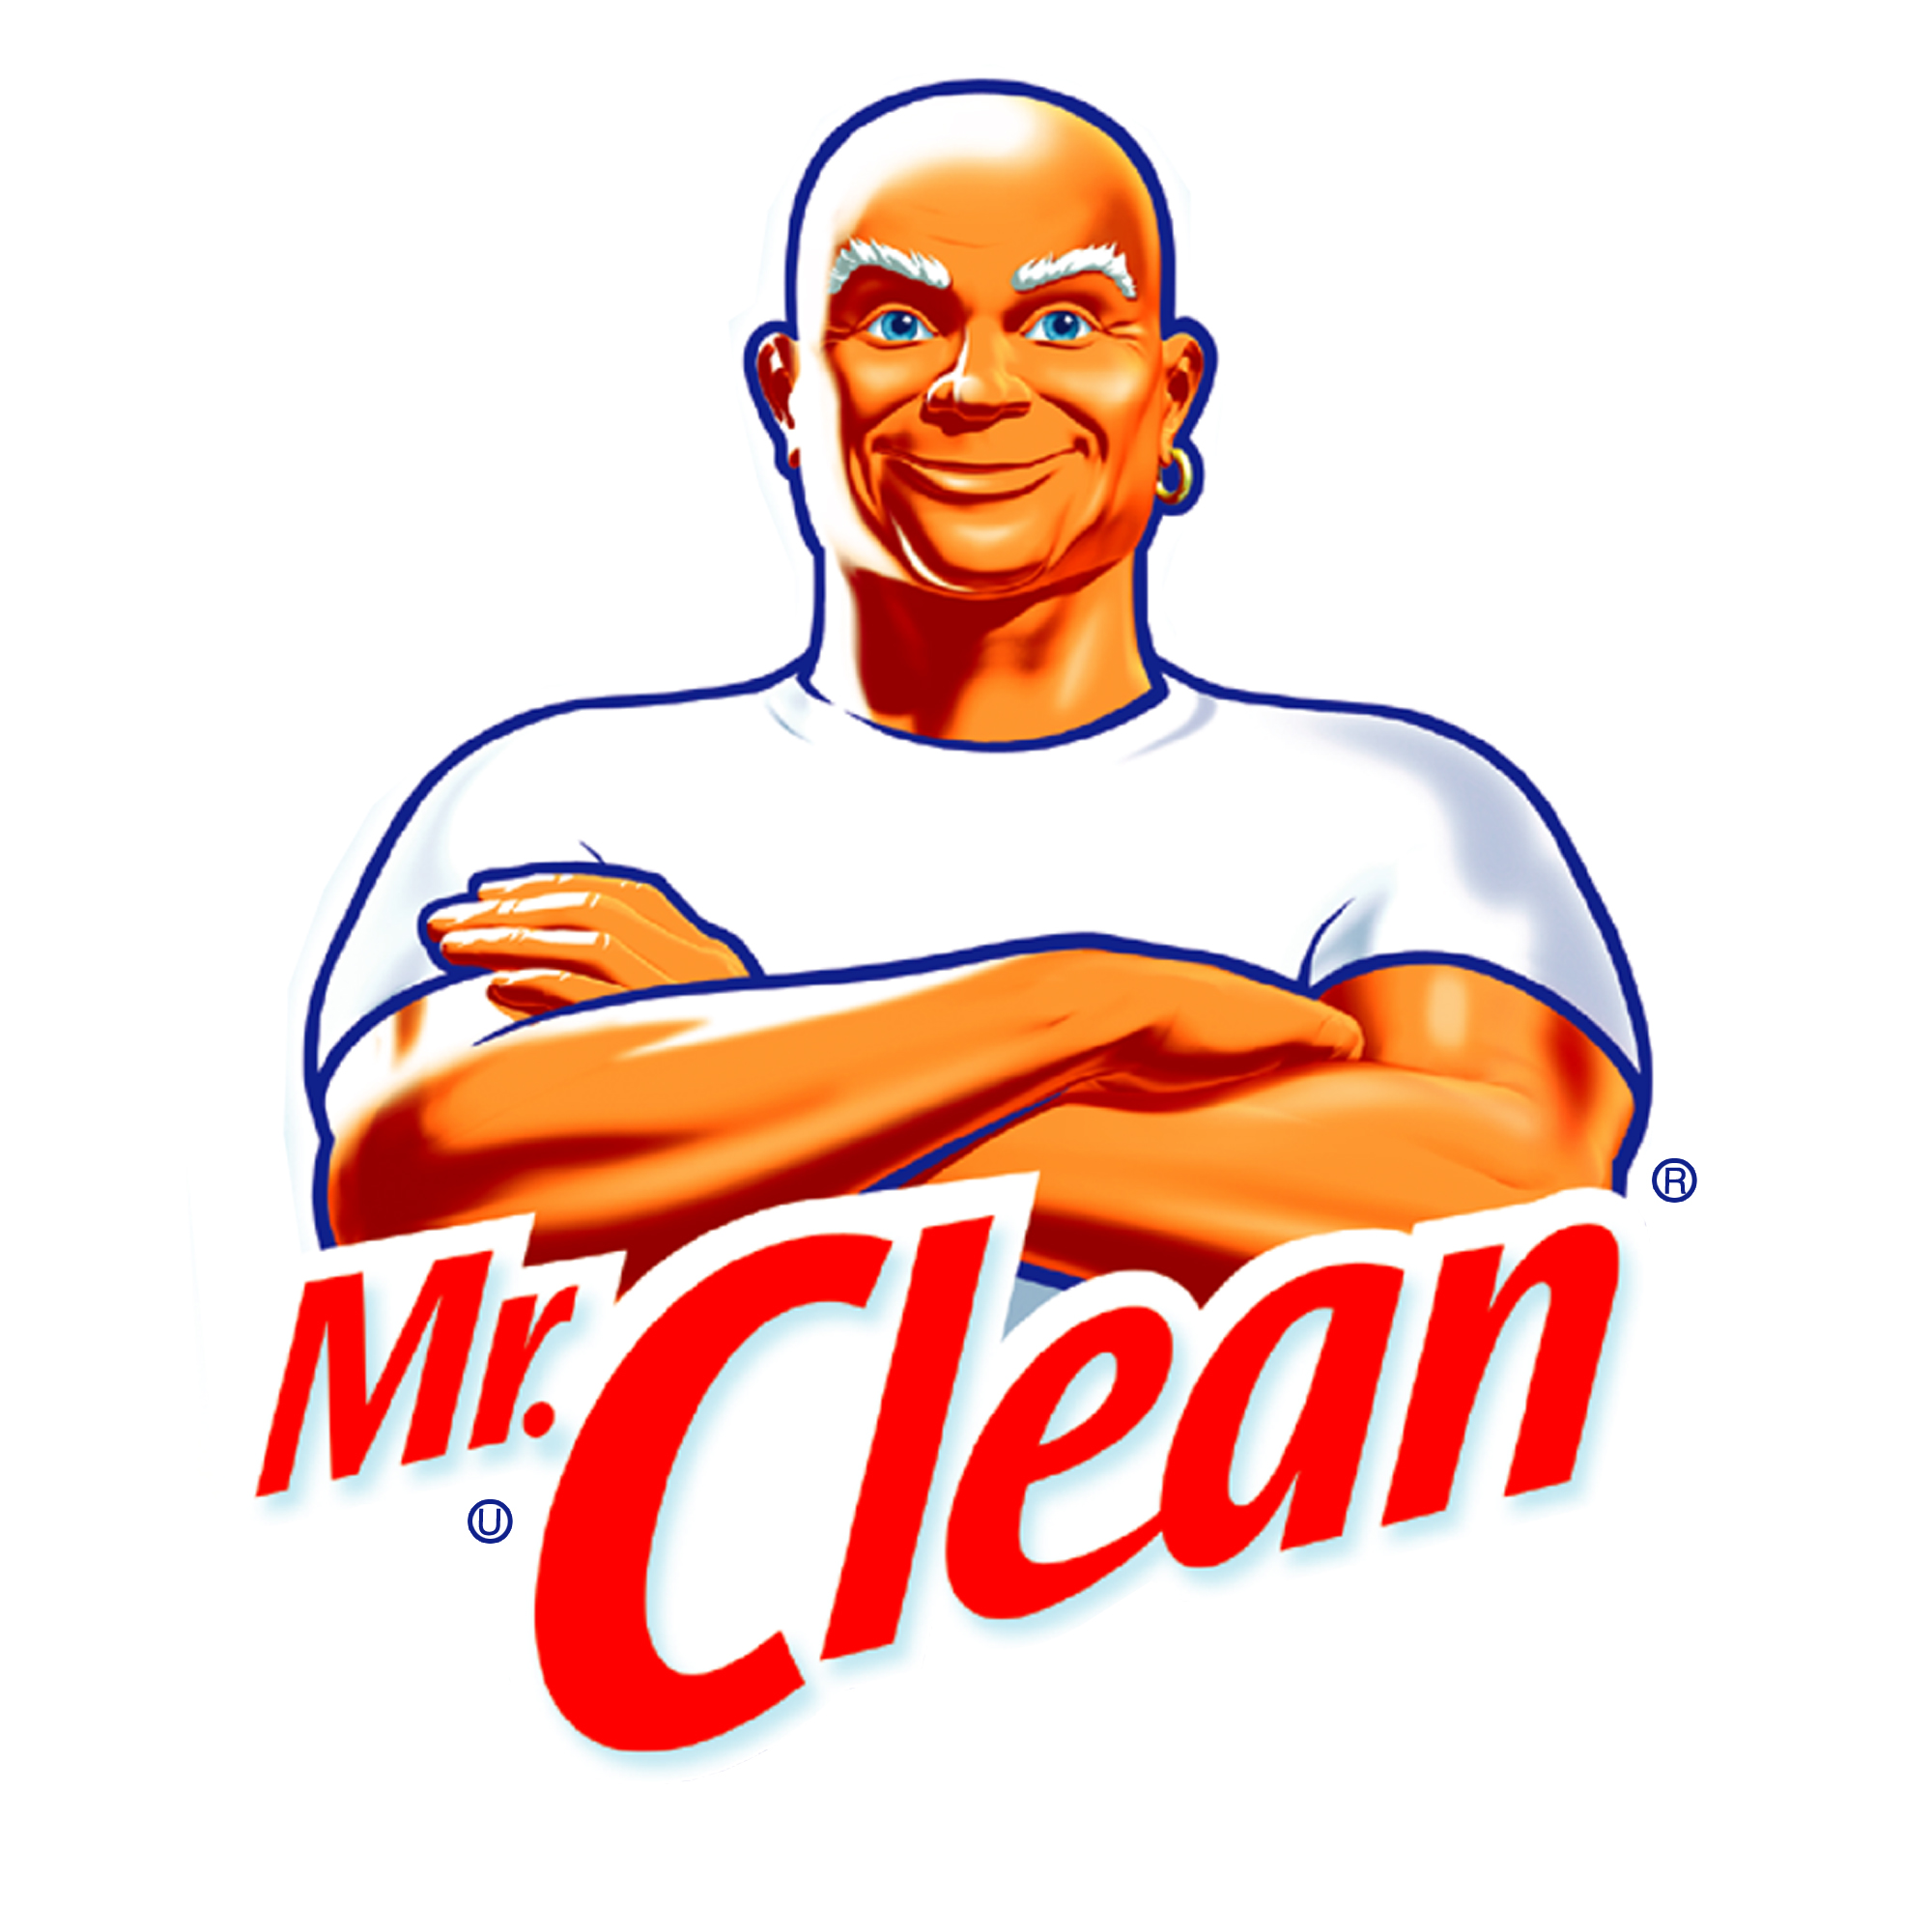 Mr clean chris jackson. Awesome clipart cleaner background